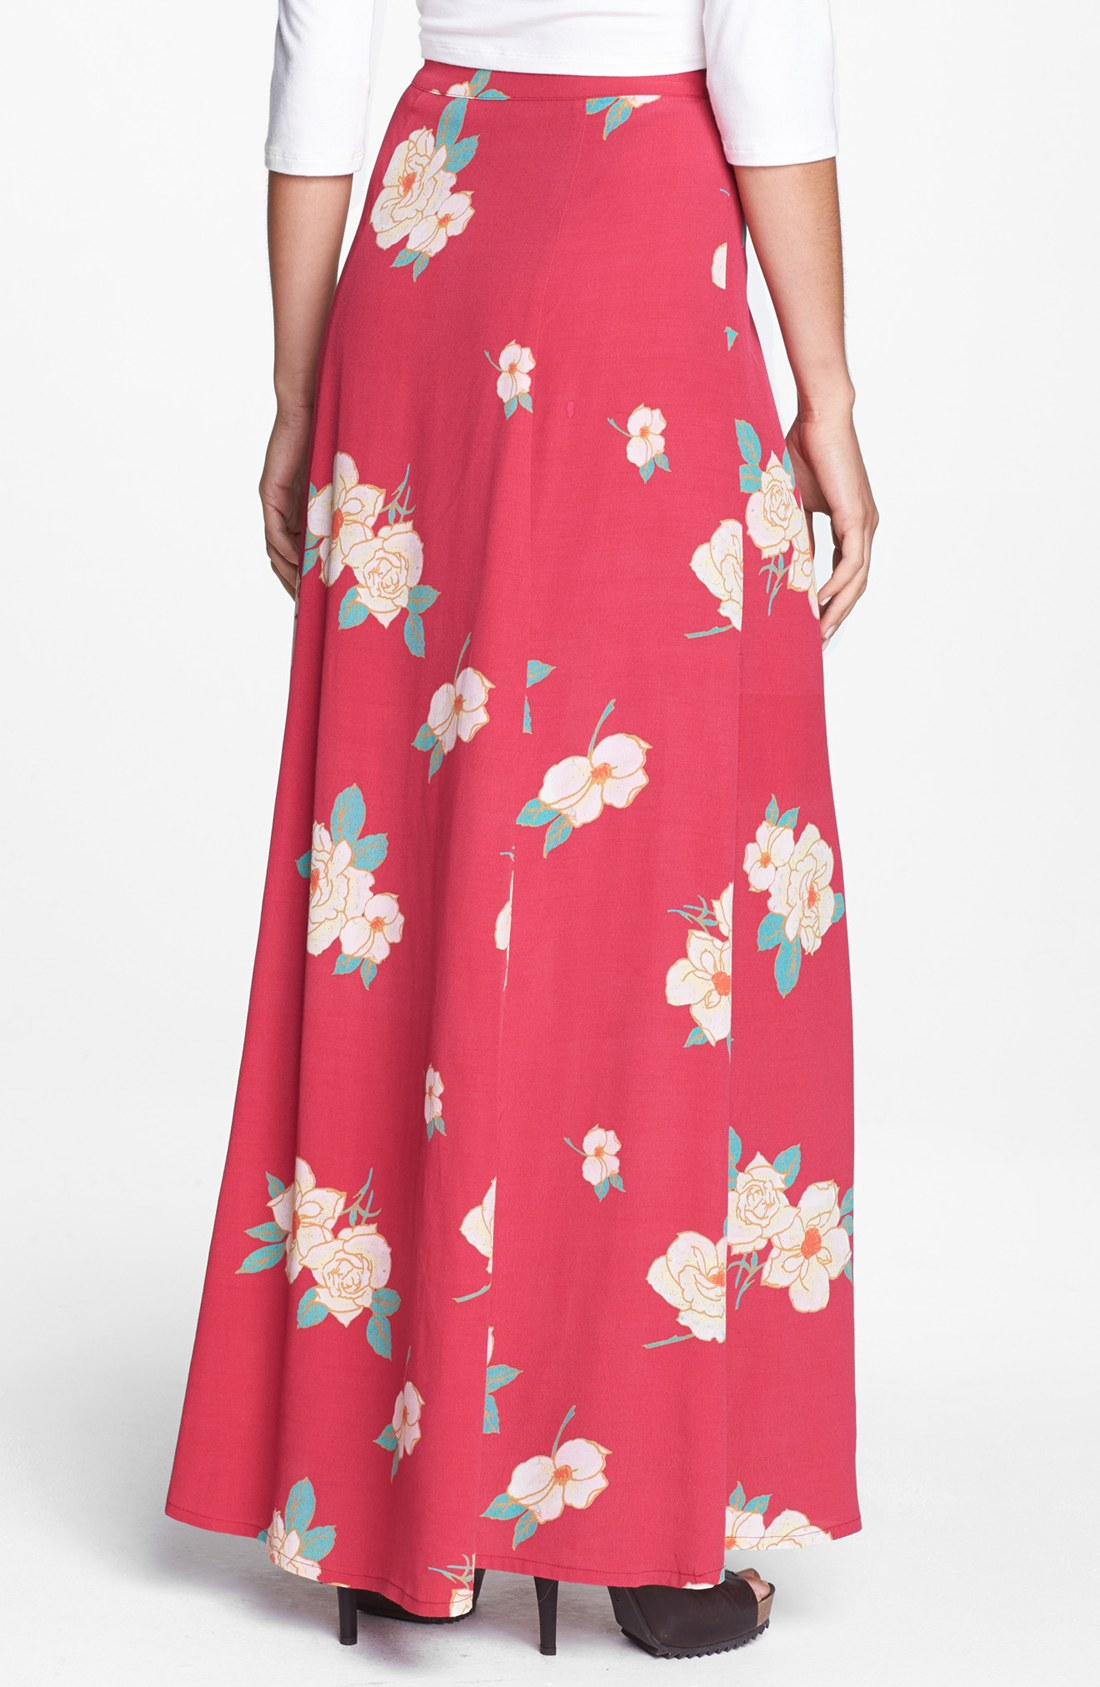 Mink pink floral maxi skirt – Modern skirts blog for you